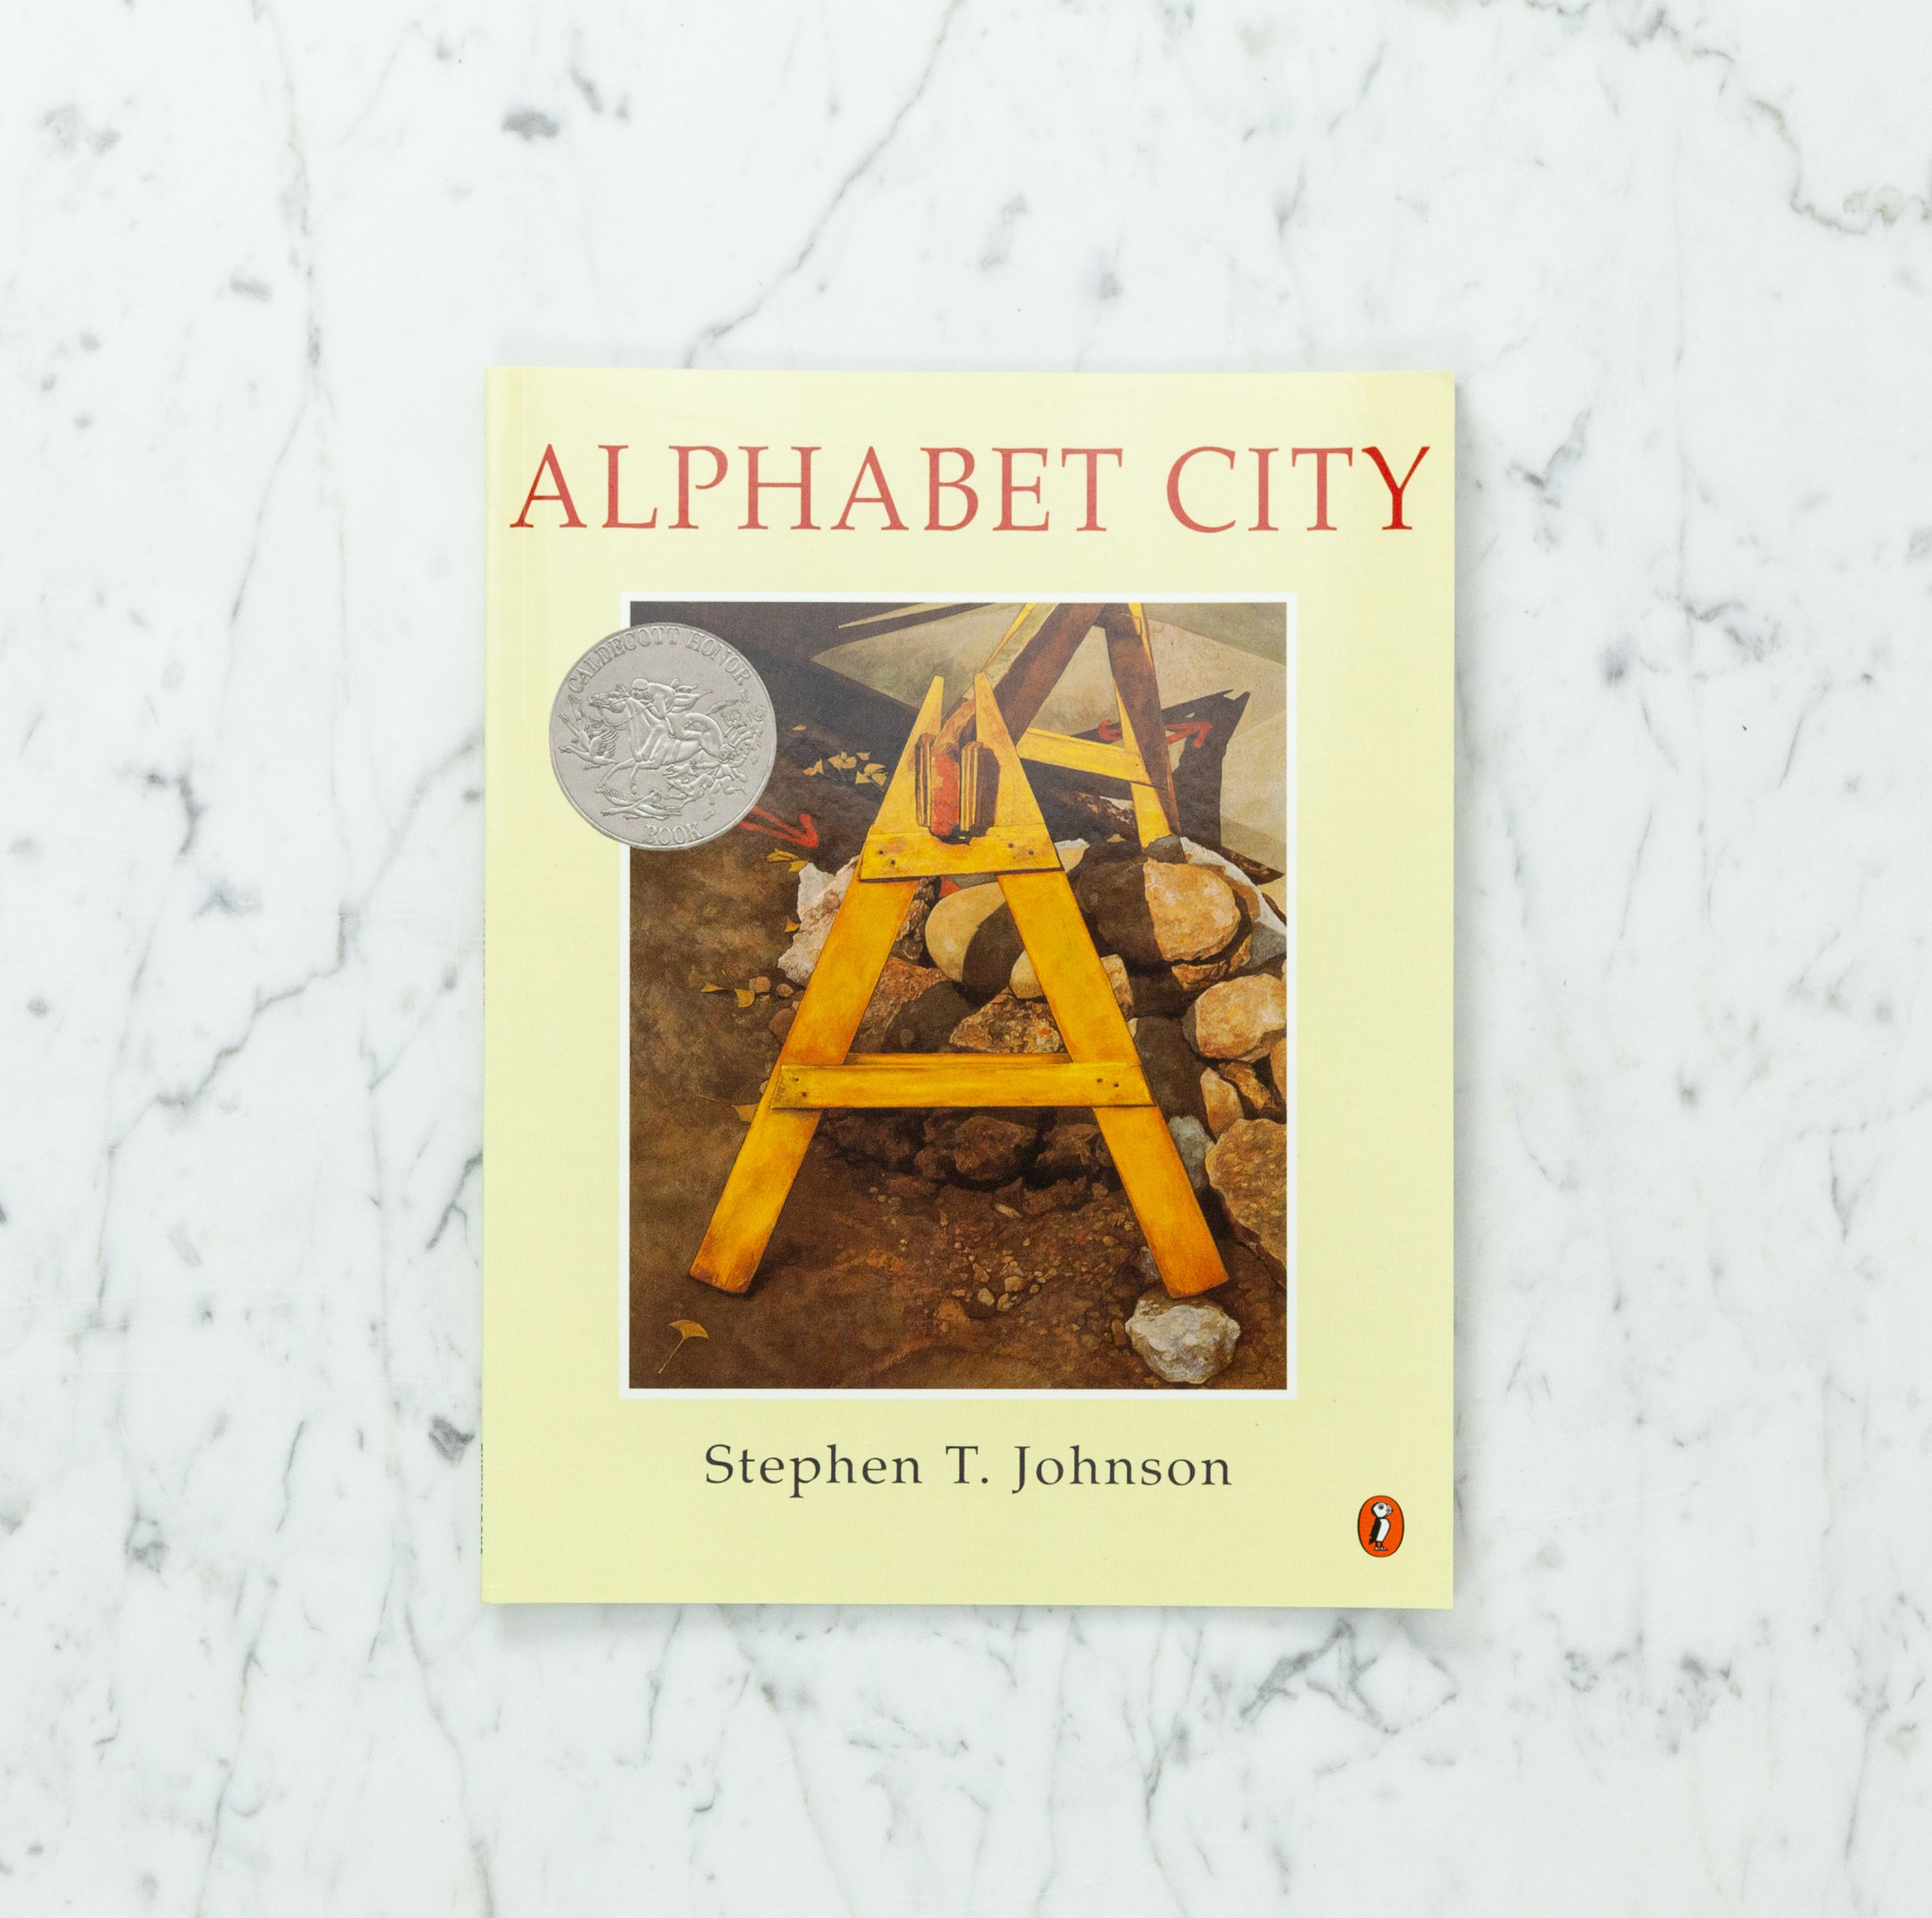 Alphabet City by Stephen T. Johnson